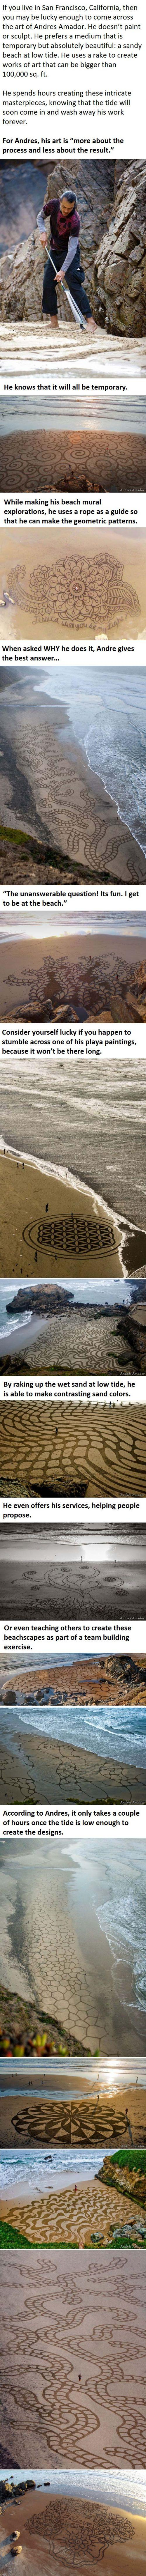 What This Guy Does At The Beach Is Absolutely Stunning... -   Misc